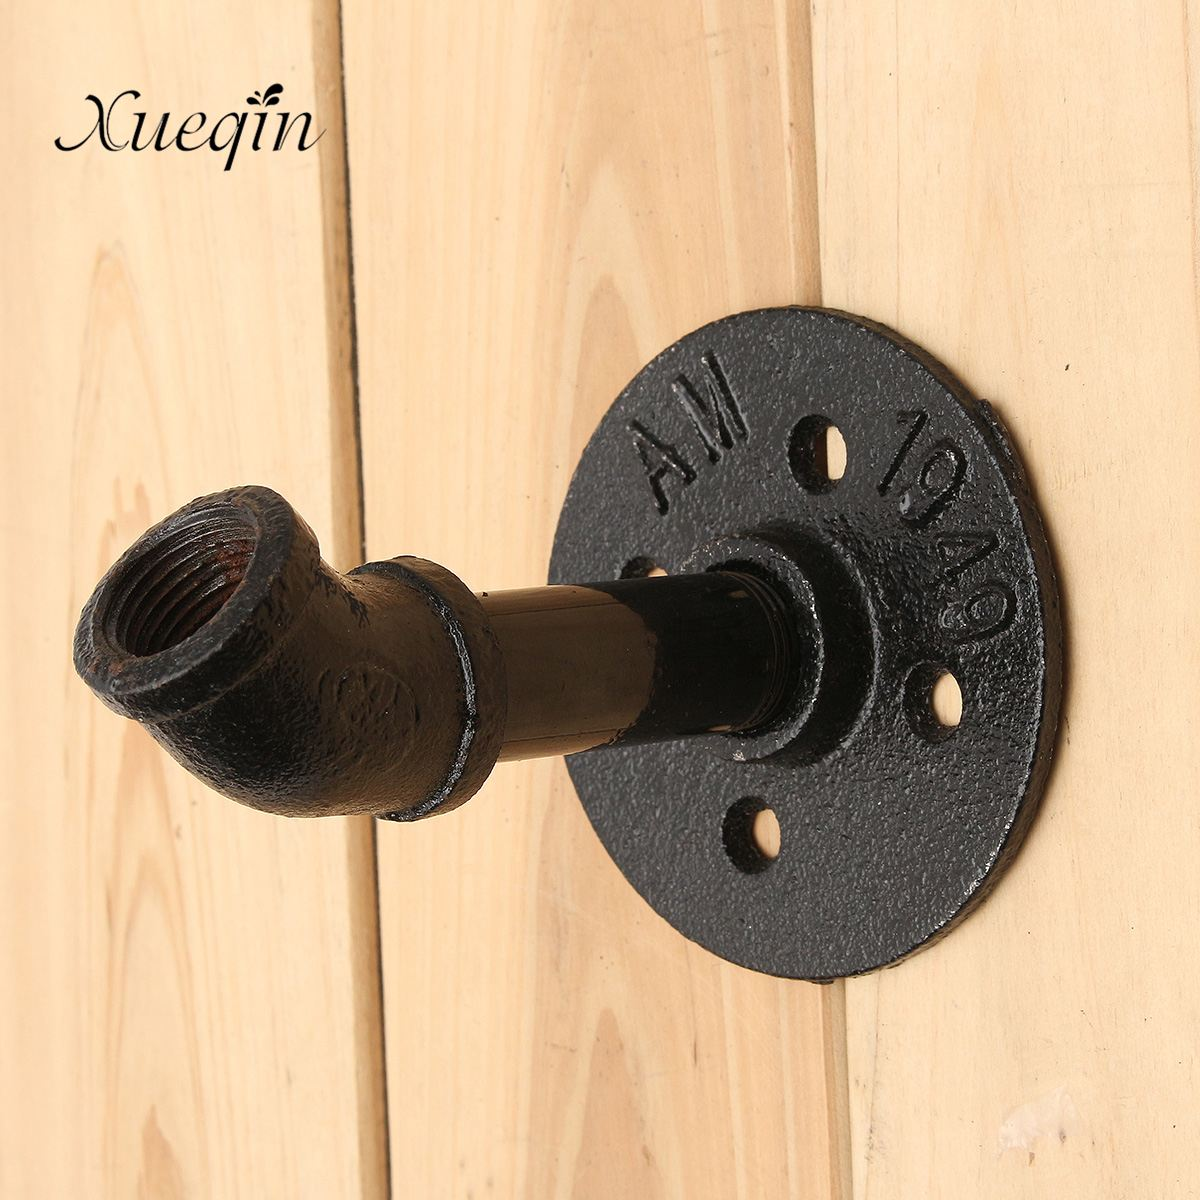 xueqin Industrial Rustic Style Black Cast Iron Pipe Cloth Coat Hook Hanger Wall Mount Rack Holder Bathroom Accessories